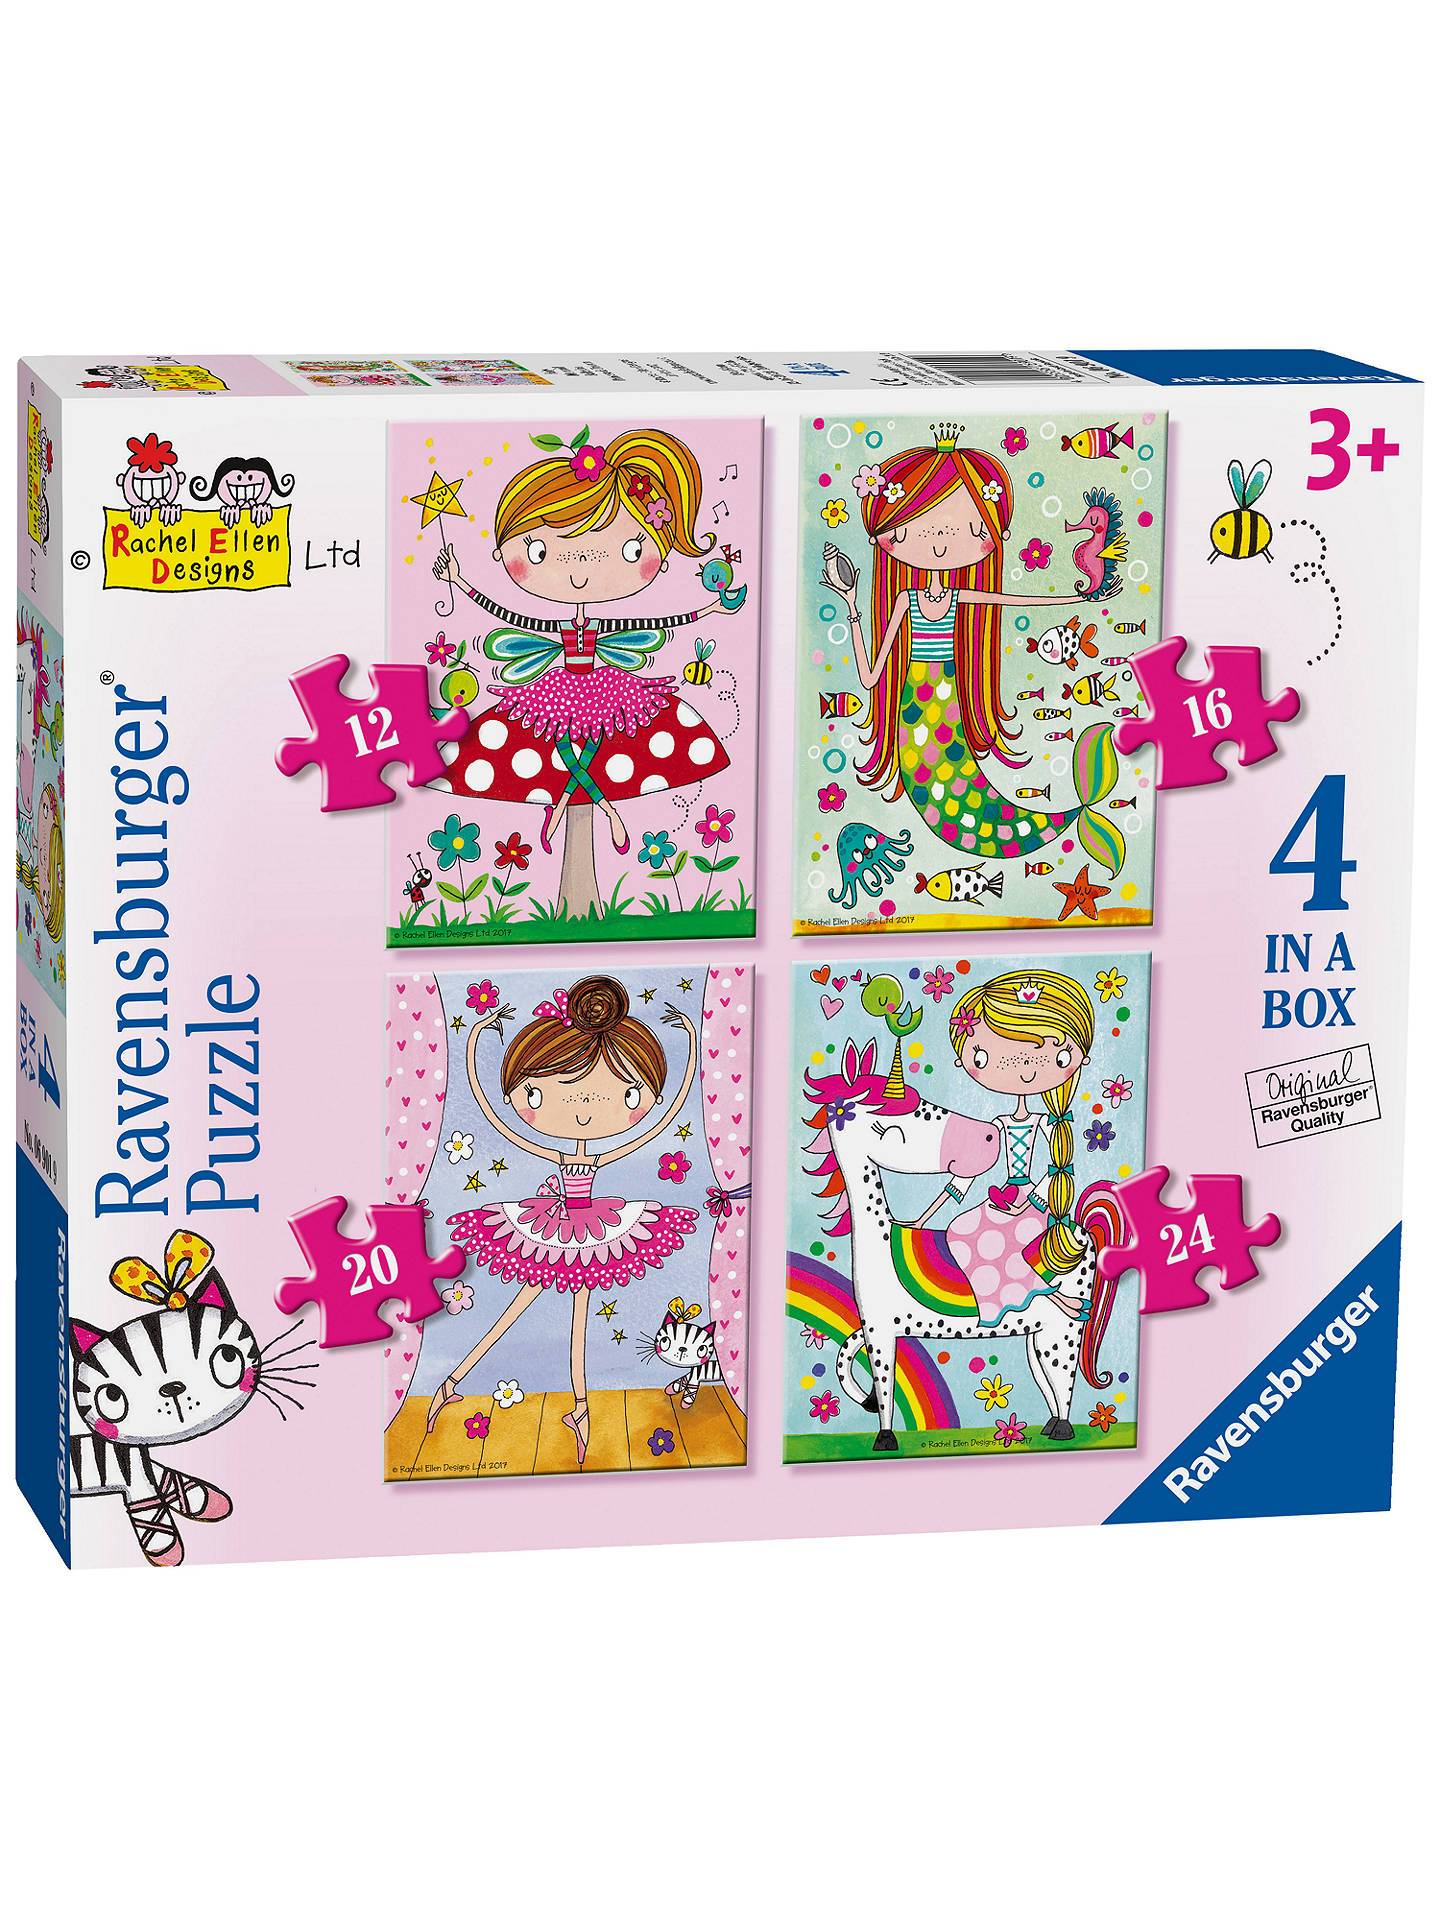 BuyRavensburger Fairytale Adventures Jigsaw Puzzles, Box of 4 Online at johnlewis.com